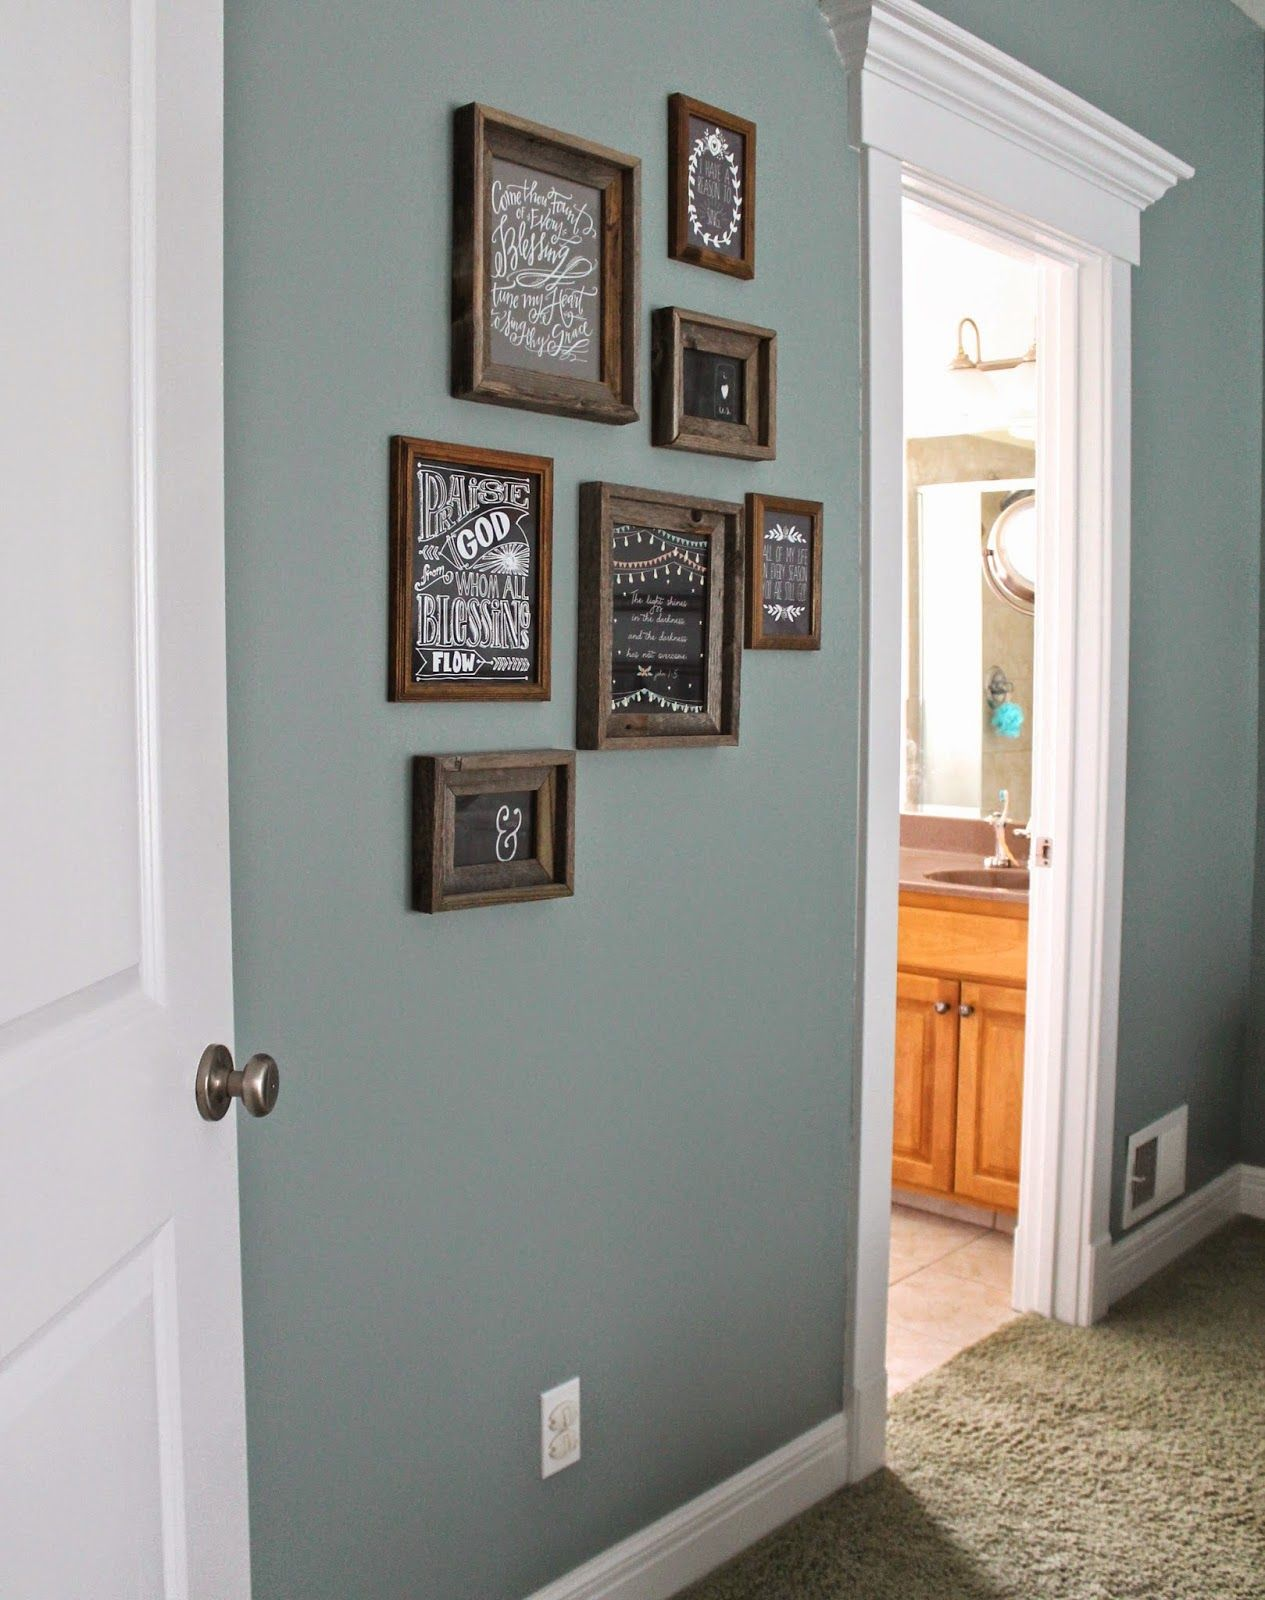 paint color: valspar blue arrow dark rustic frames, hobby lobby